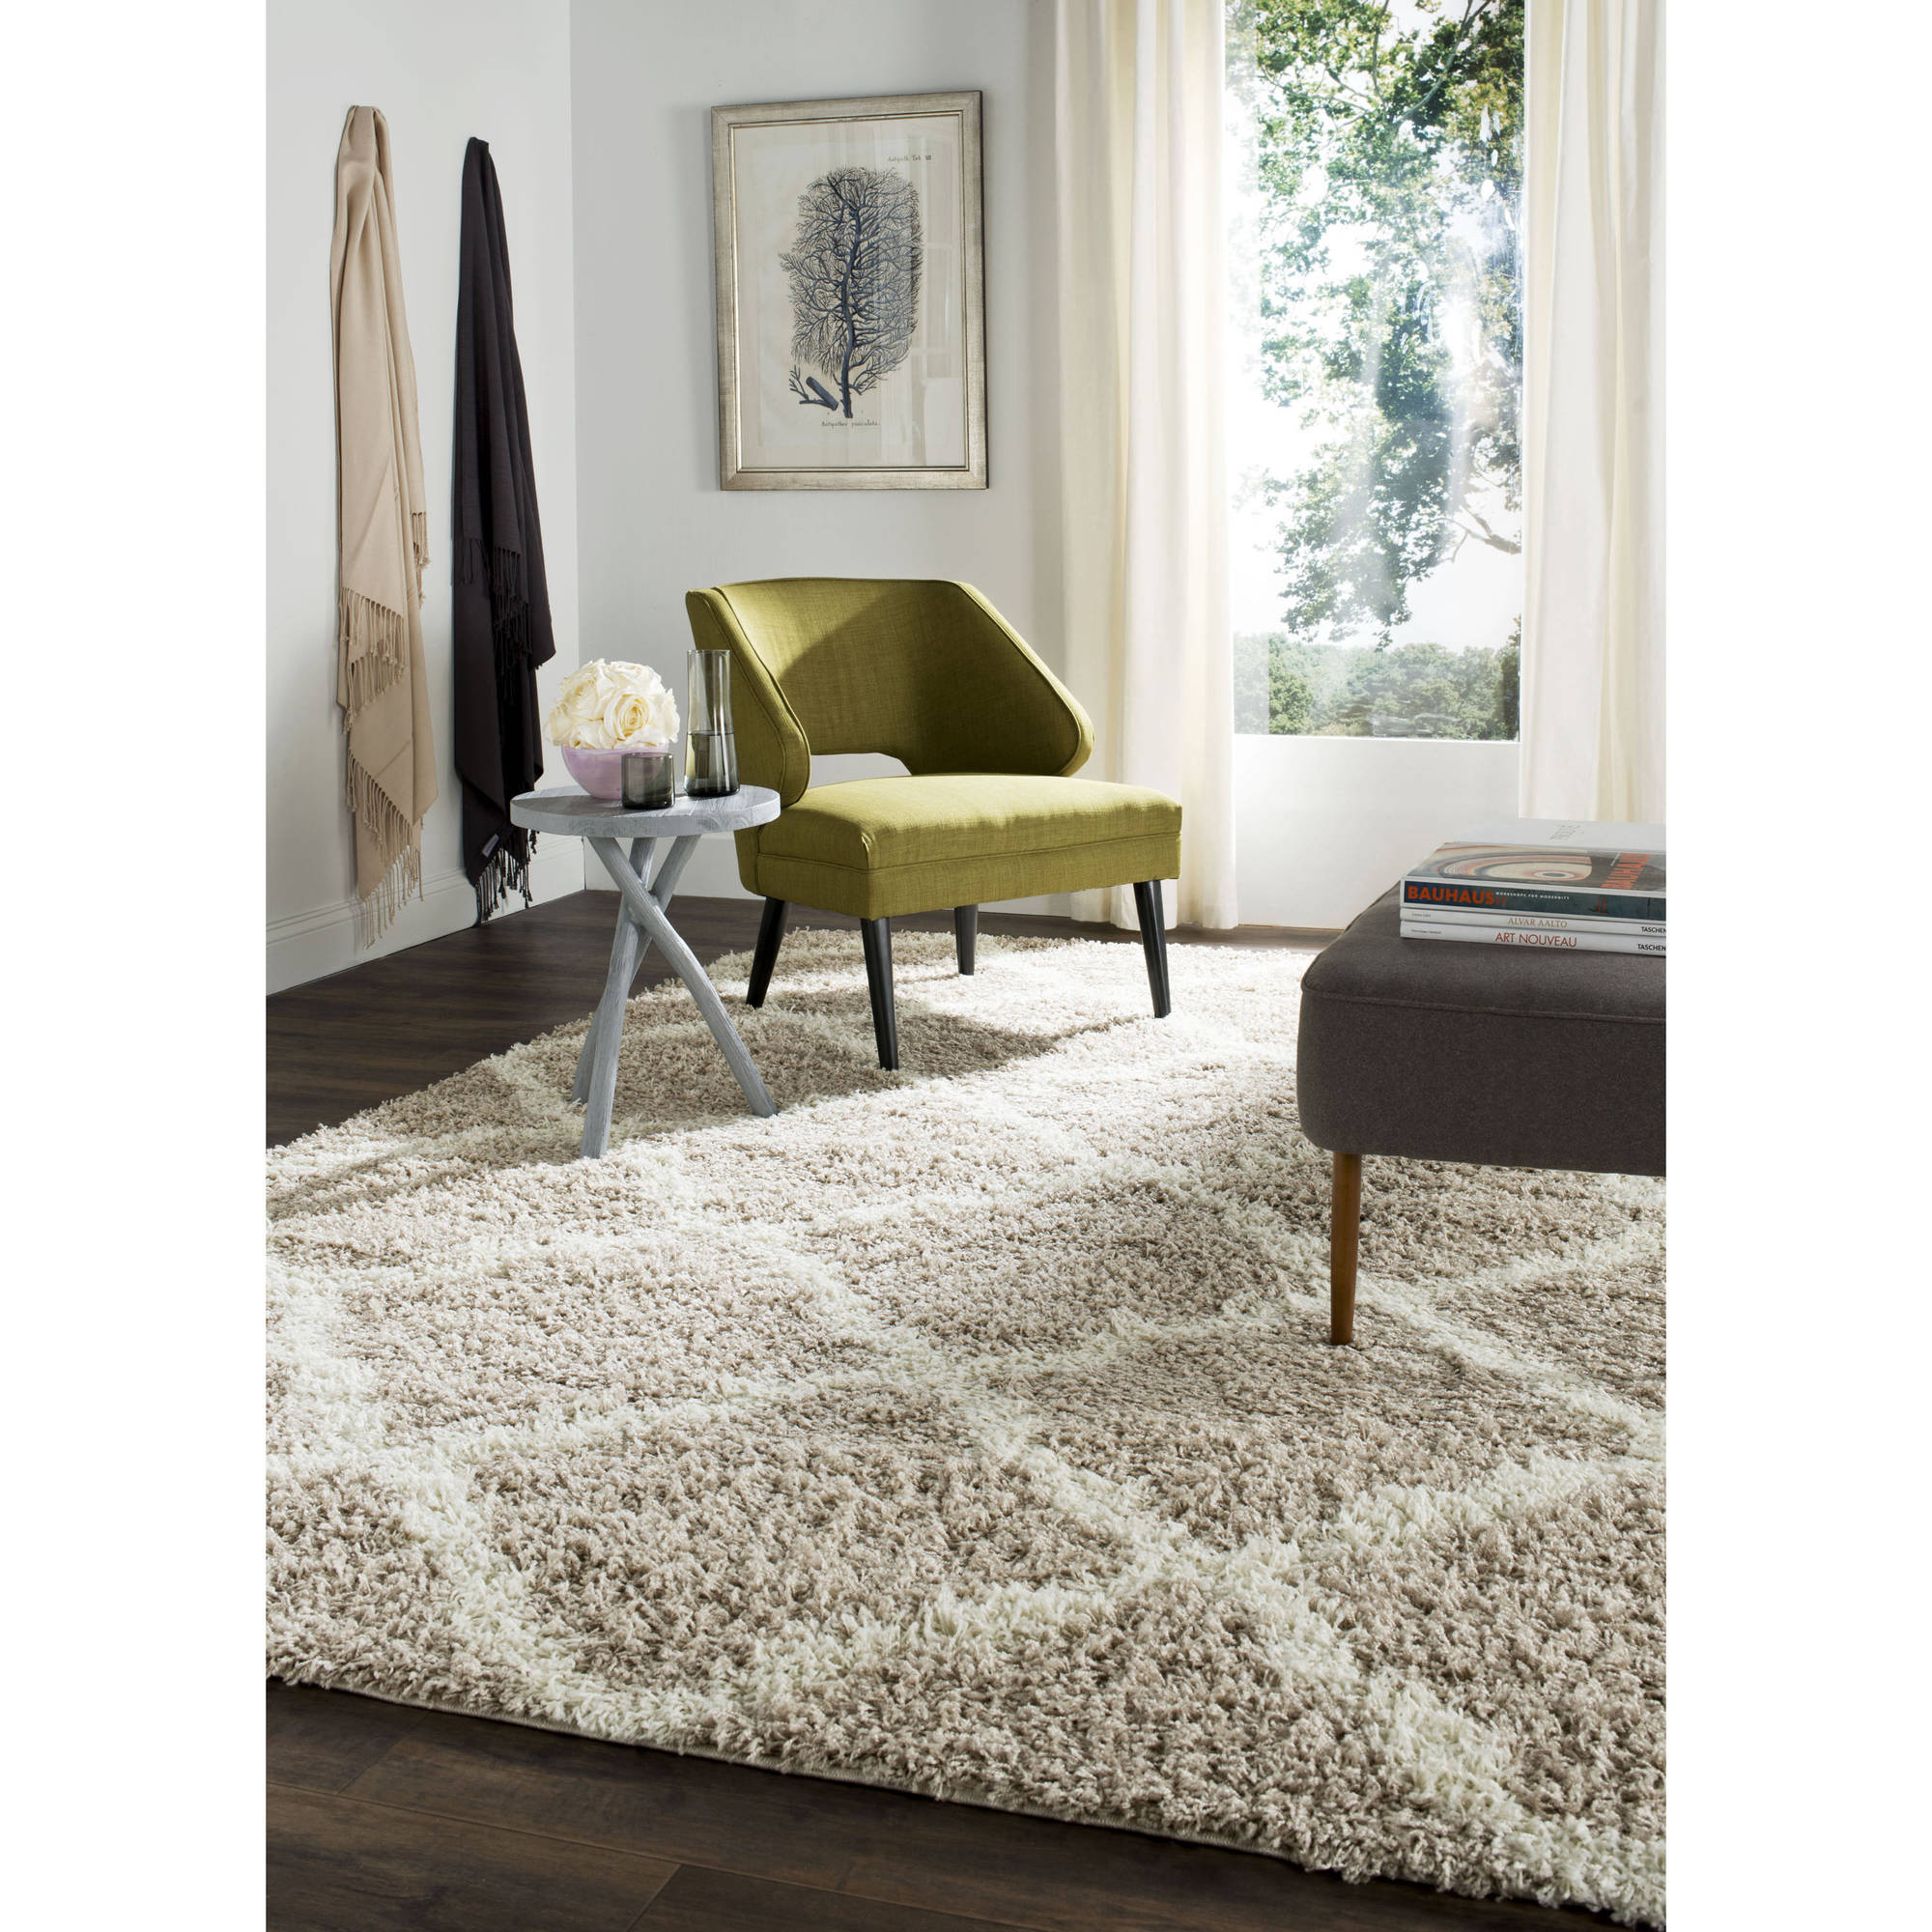 fashionable maples rugs with coffeetable and window curtain for living room